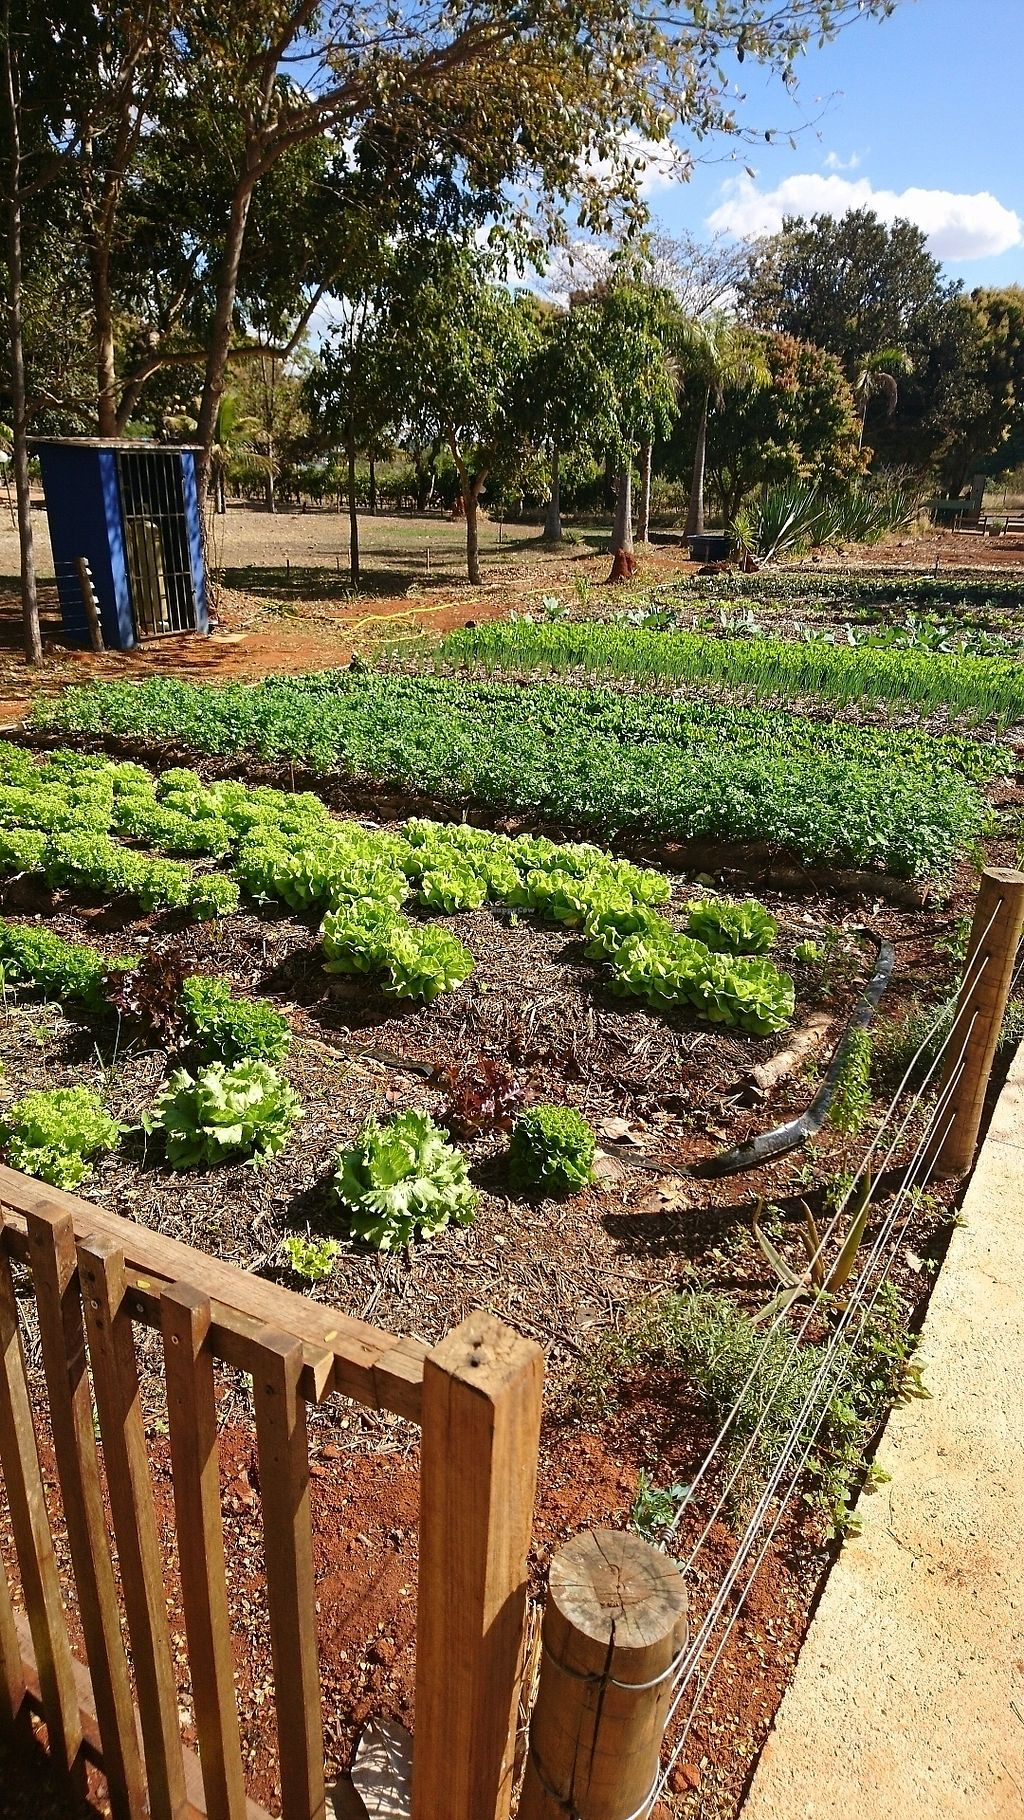 """Photo of Villa Vegana  by <a href=""""/members/profile/cookiemonster_ontour"""">cookiemonster_ontour</a> <br/>vegetable garden in front of the restaurant <br/> August 28, 2017  - <a href='/contact/abuse/image/79144/298127'>Report</a>"""